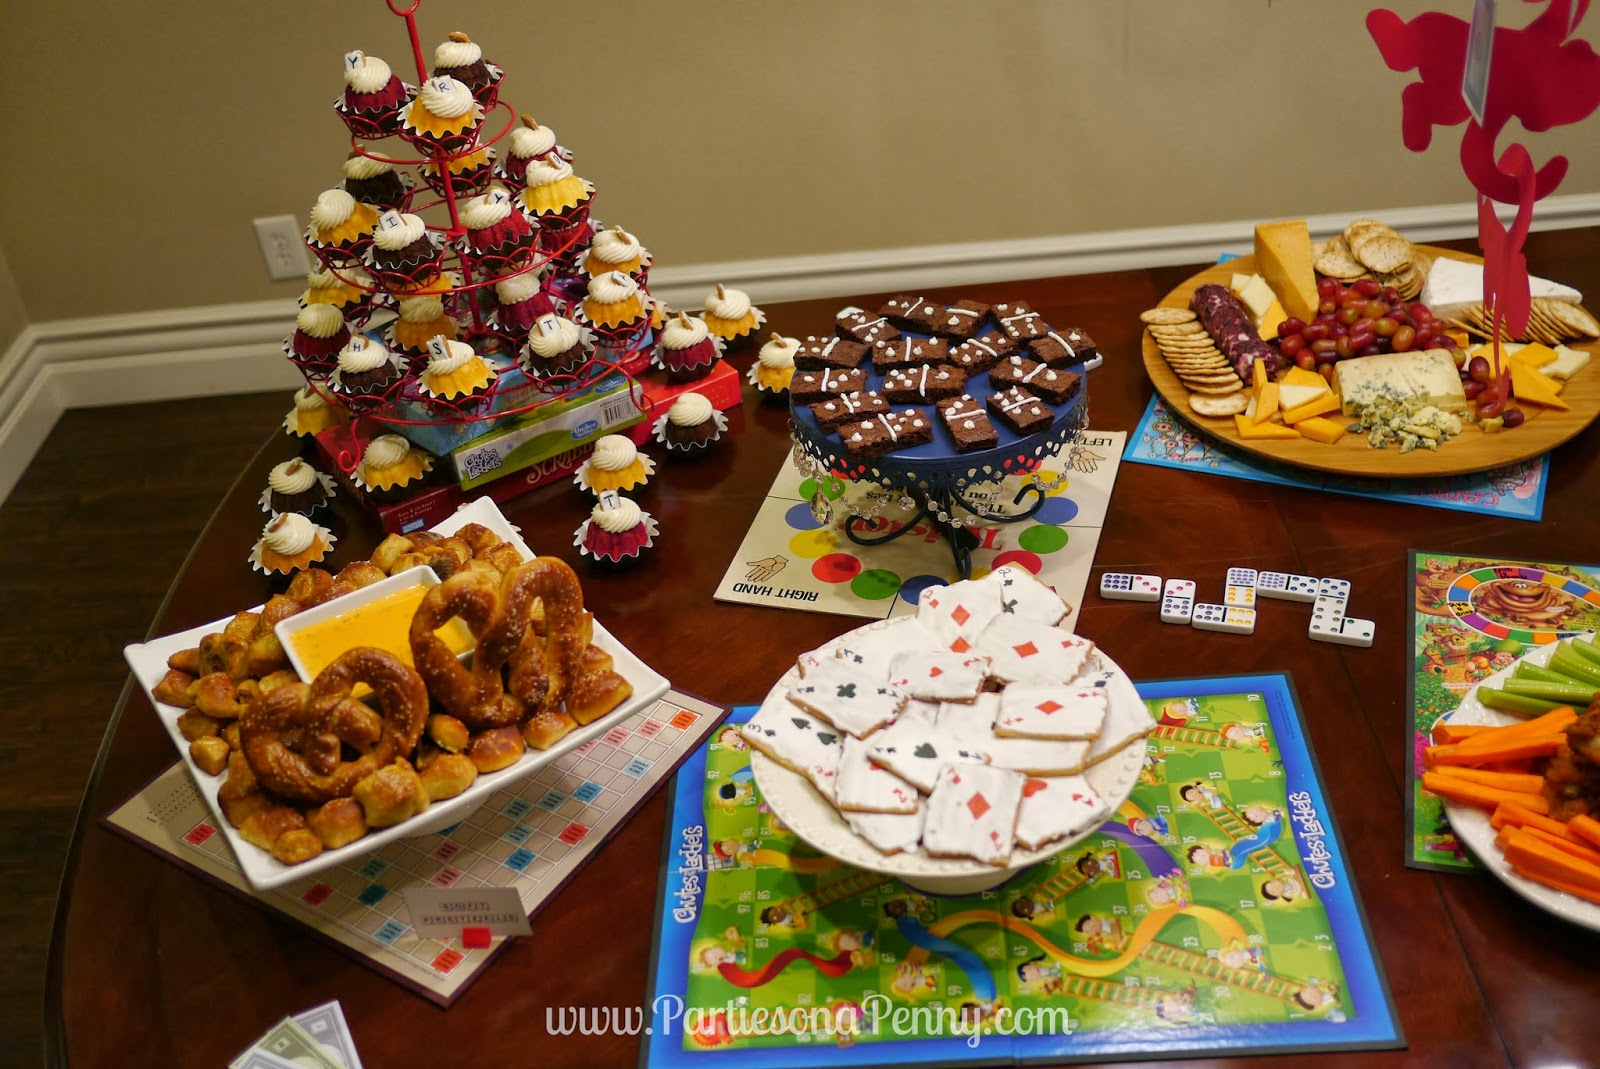 parties on a penny board game themed birthday party